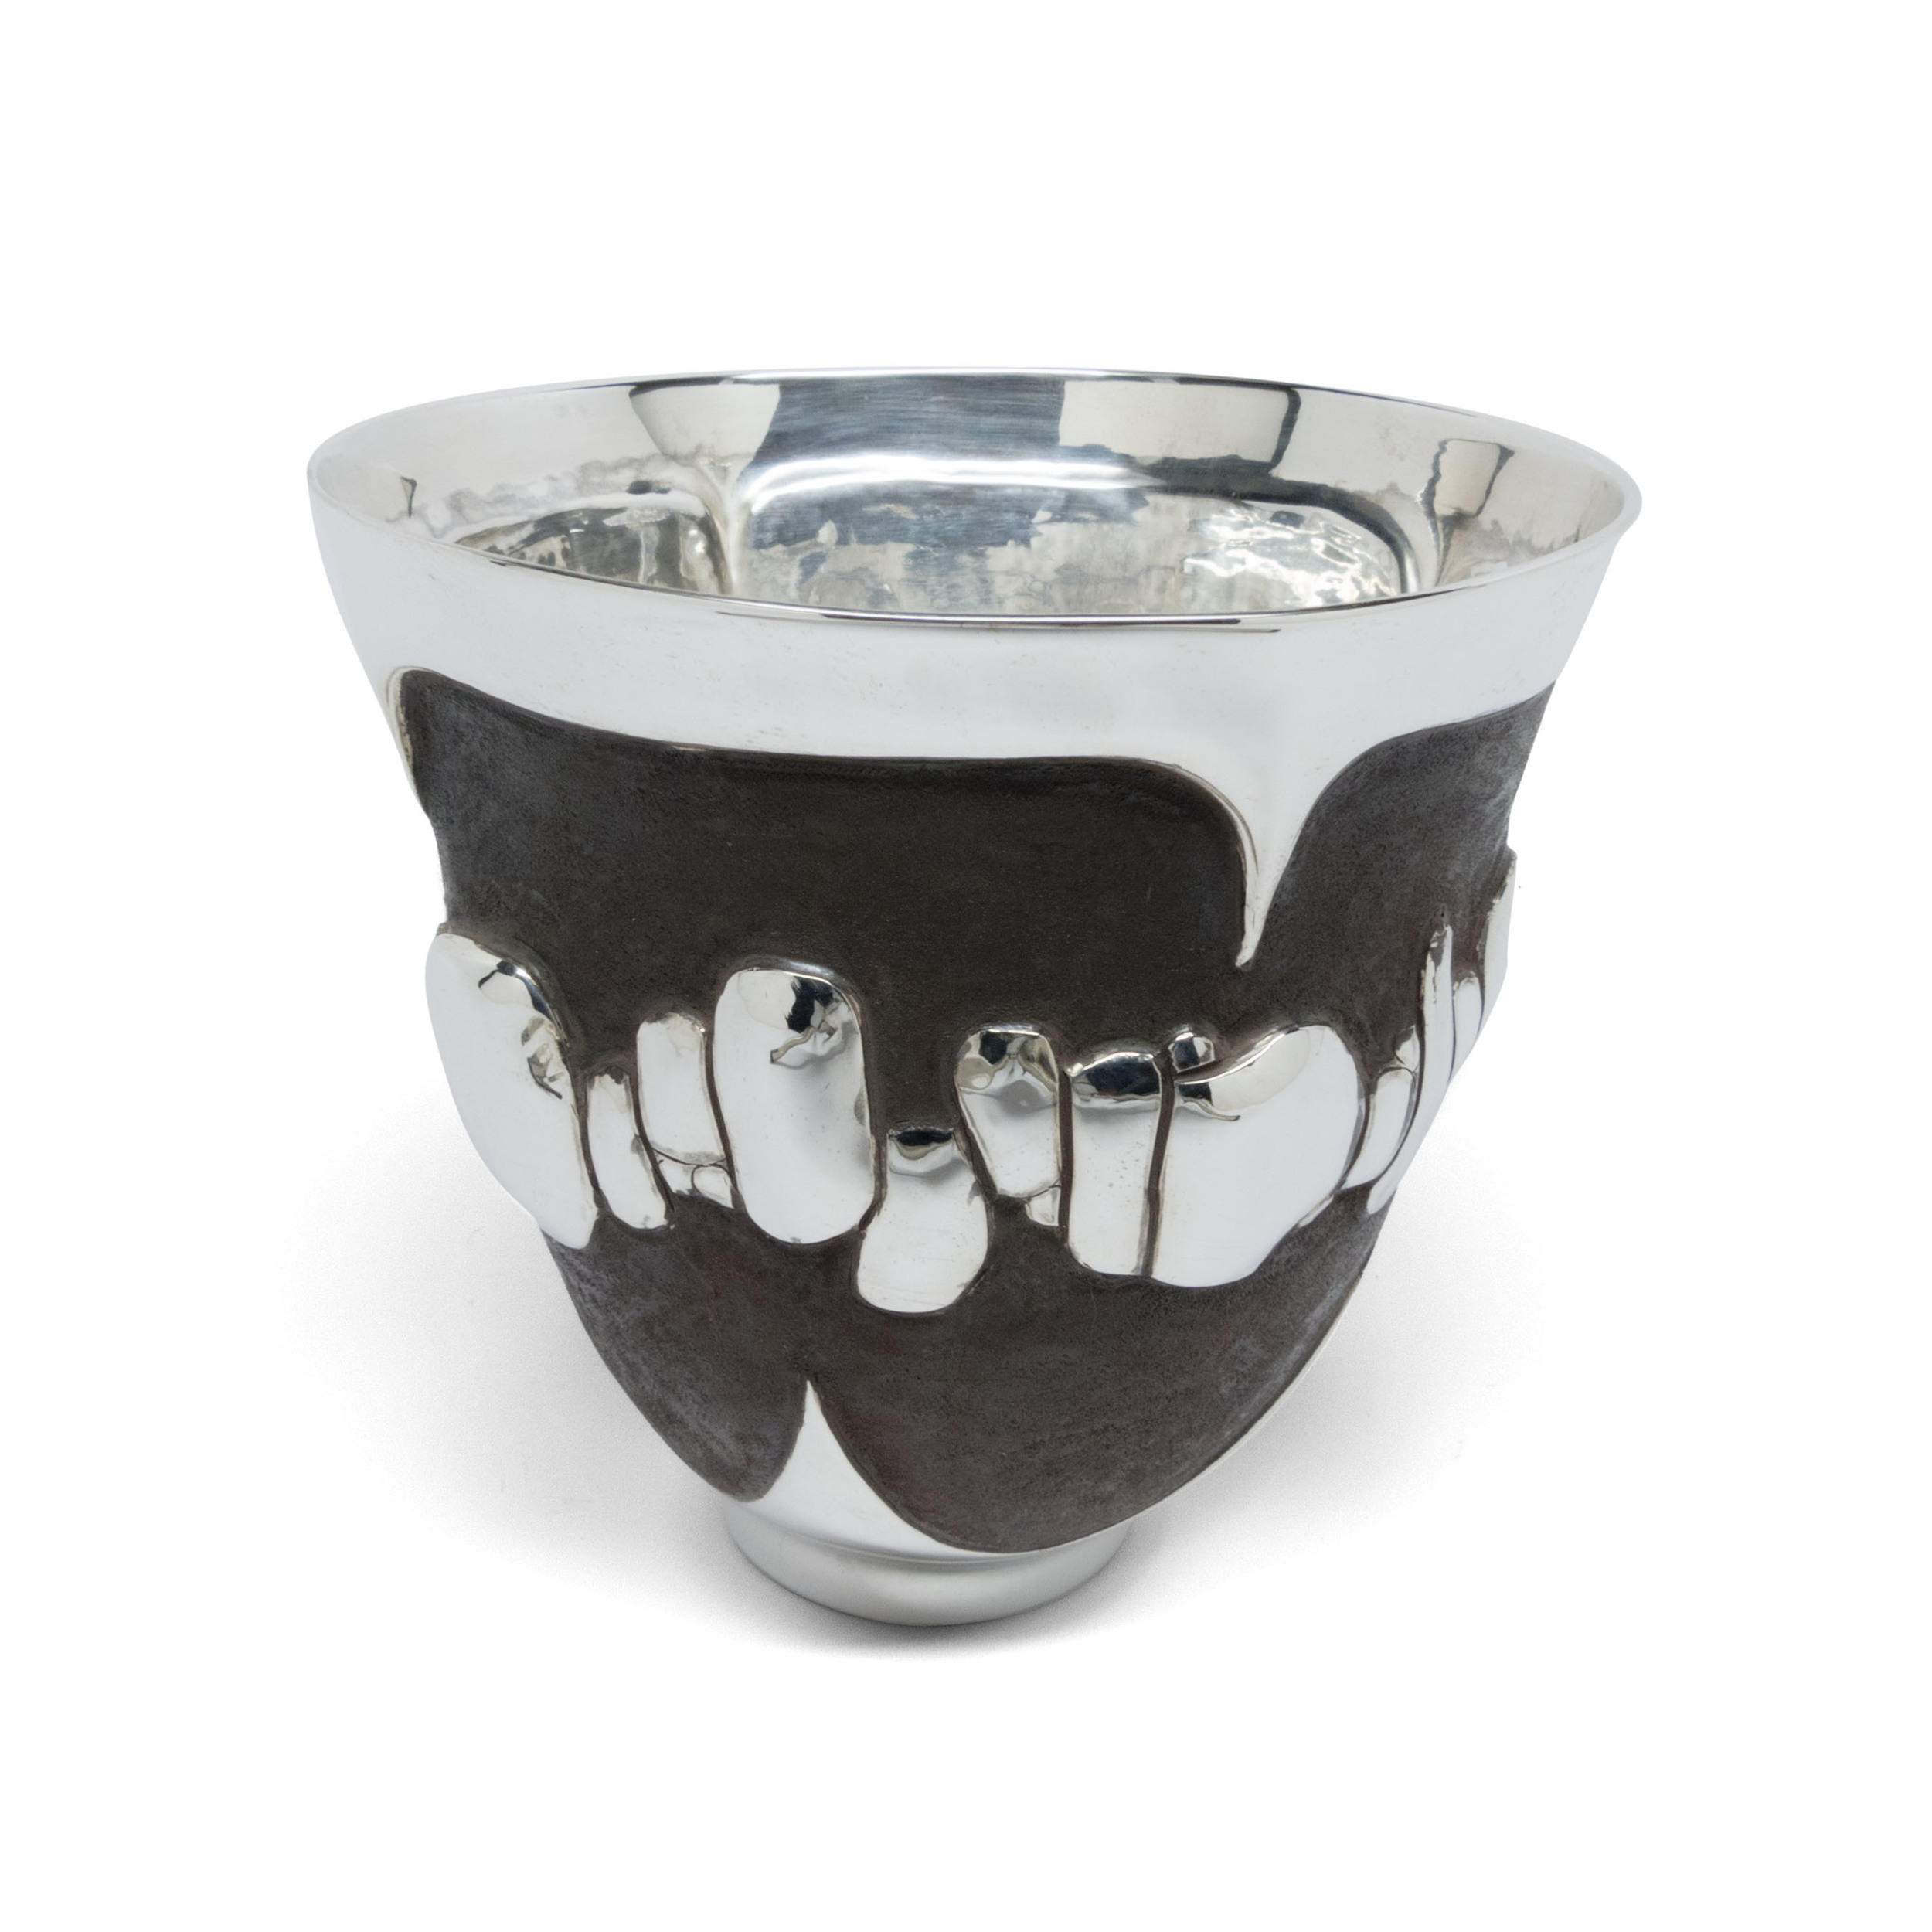 Sterling Silver cups are handmade by raising sheets of silver into volumetric forms. Details and designs are chased &   repoussé   into the vessels. All work is done by hand.